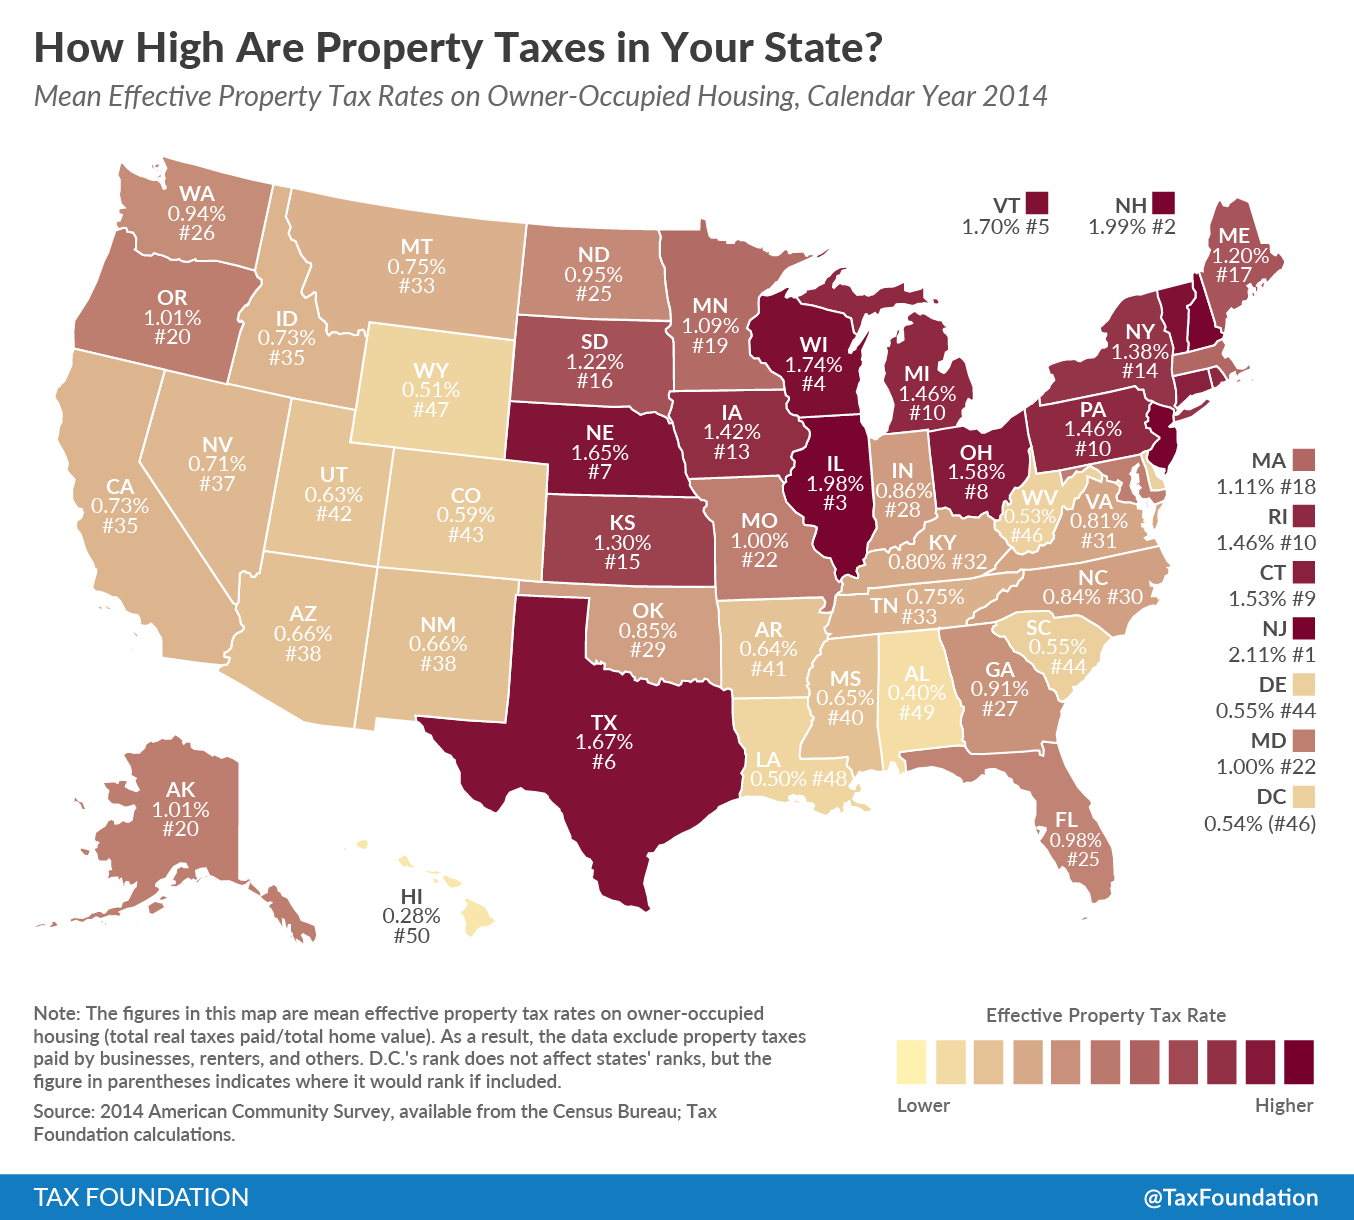 Colorado Income Tax Rate: How High Are Property Taxes In Your State? (2016)